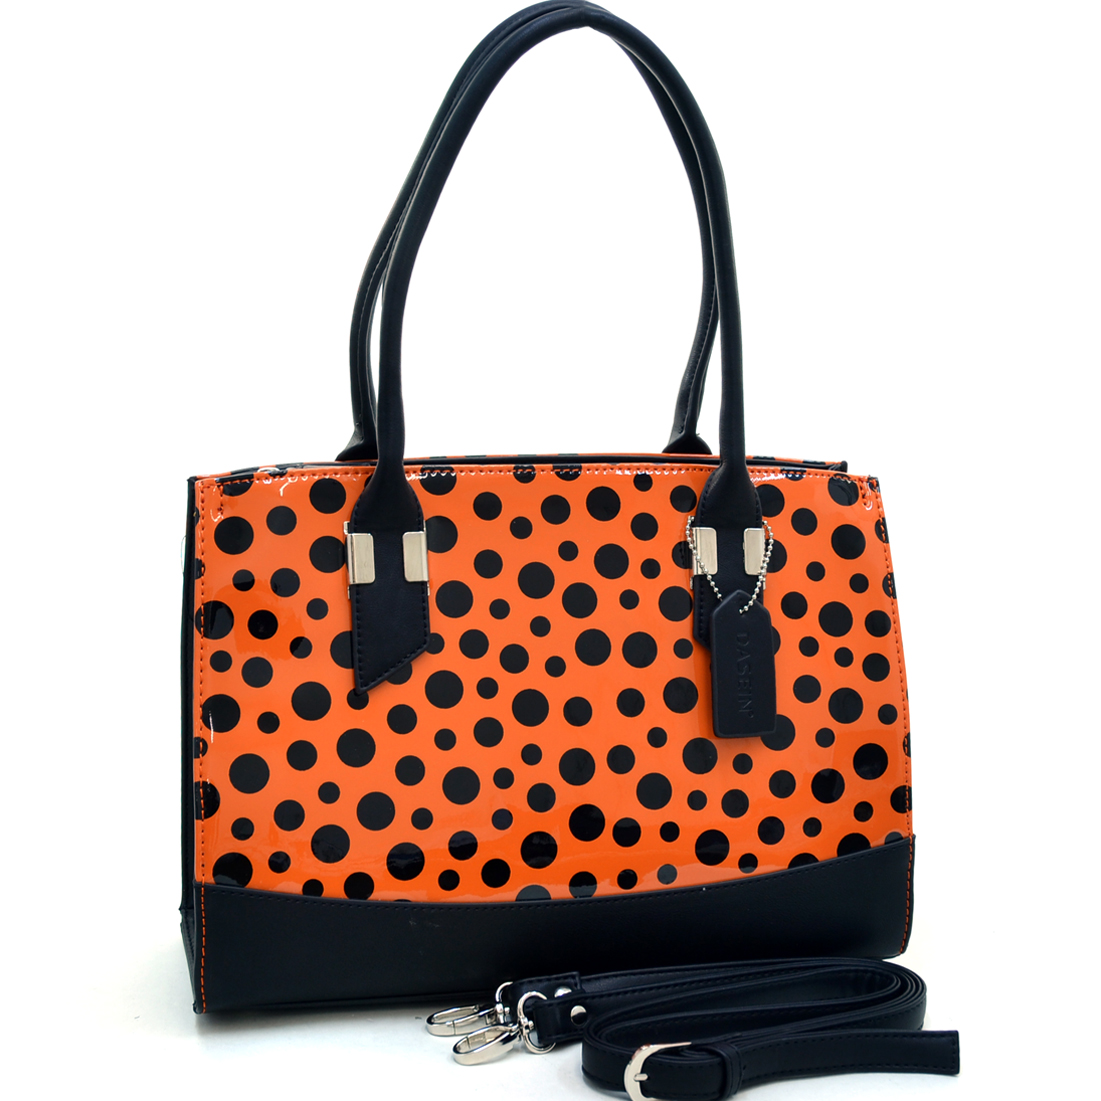 Dasein® Convertible Faux Leather Trimmed Glossy Polka Dot Satchel